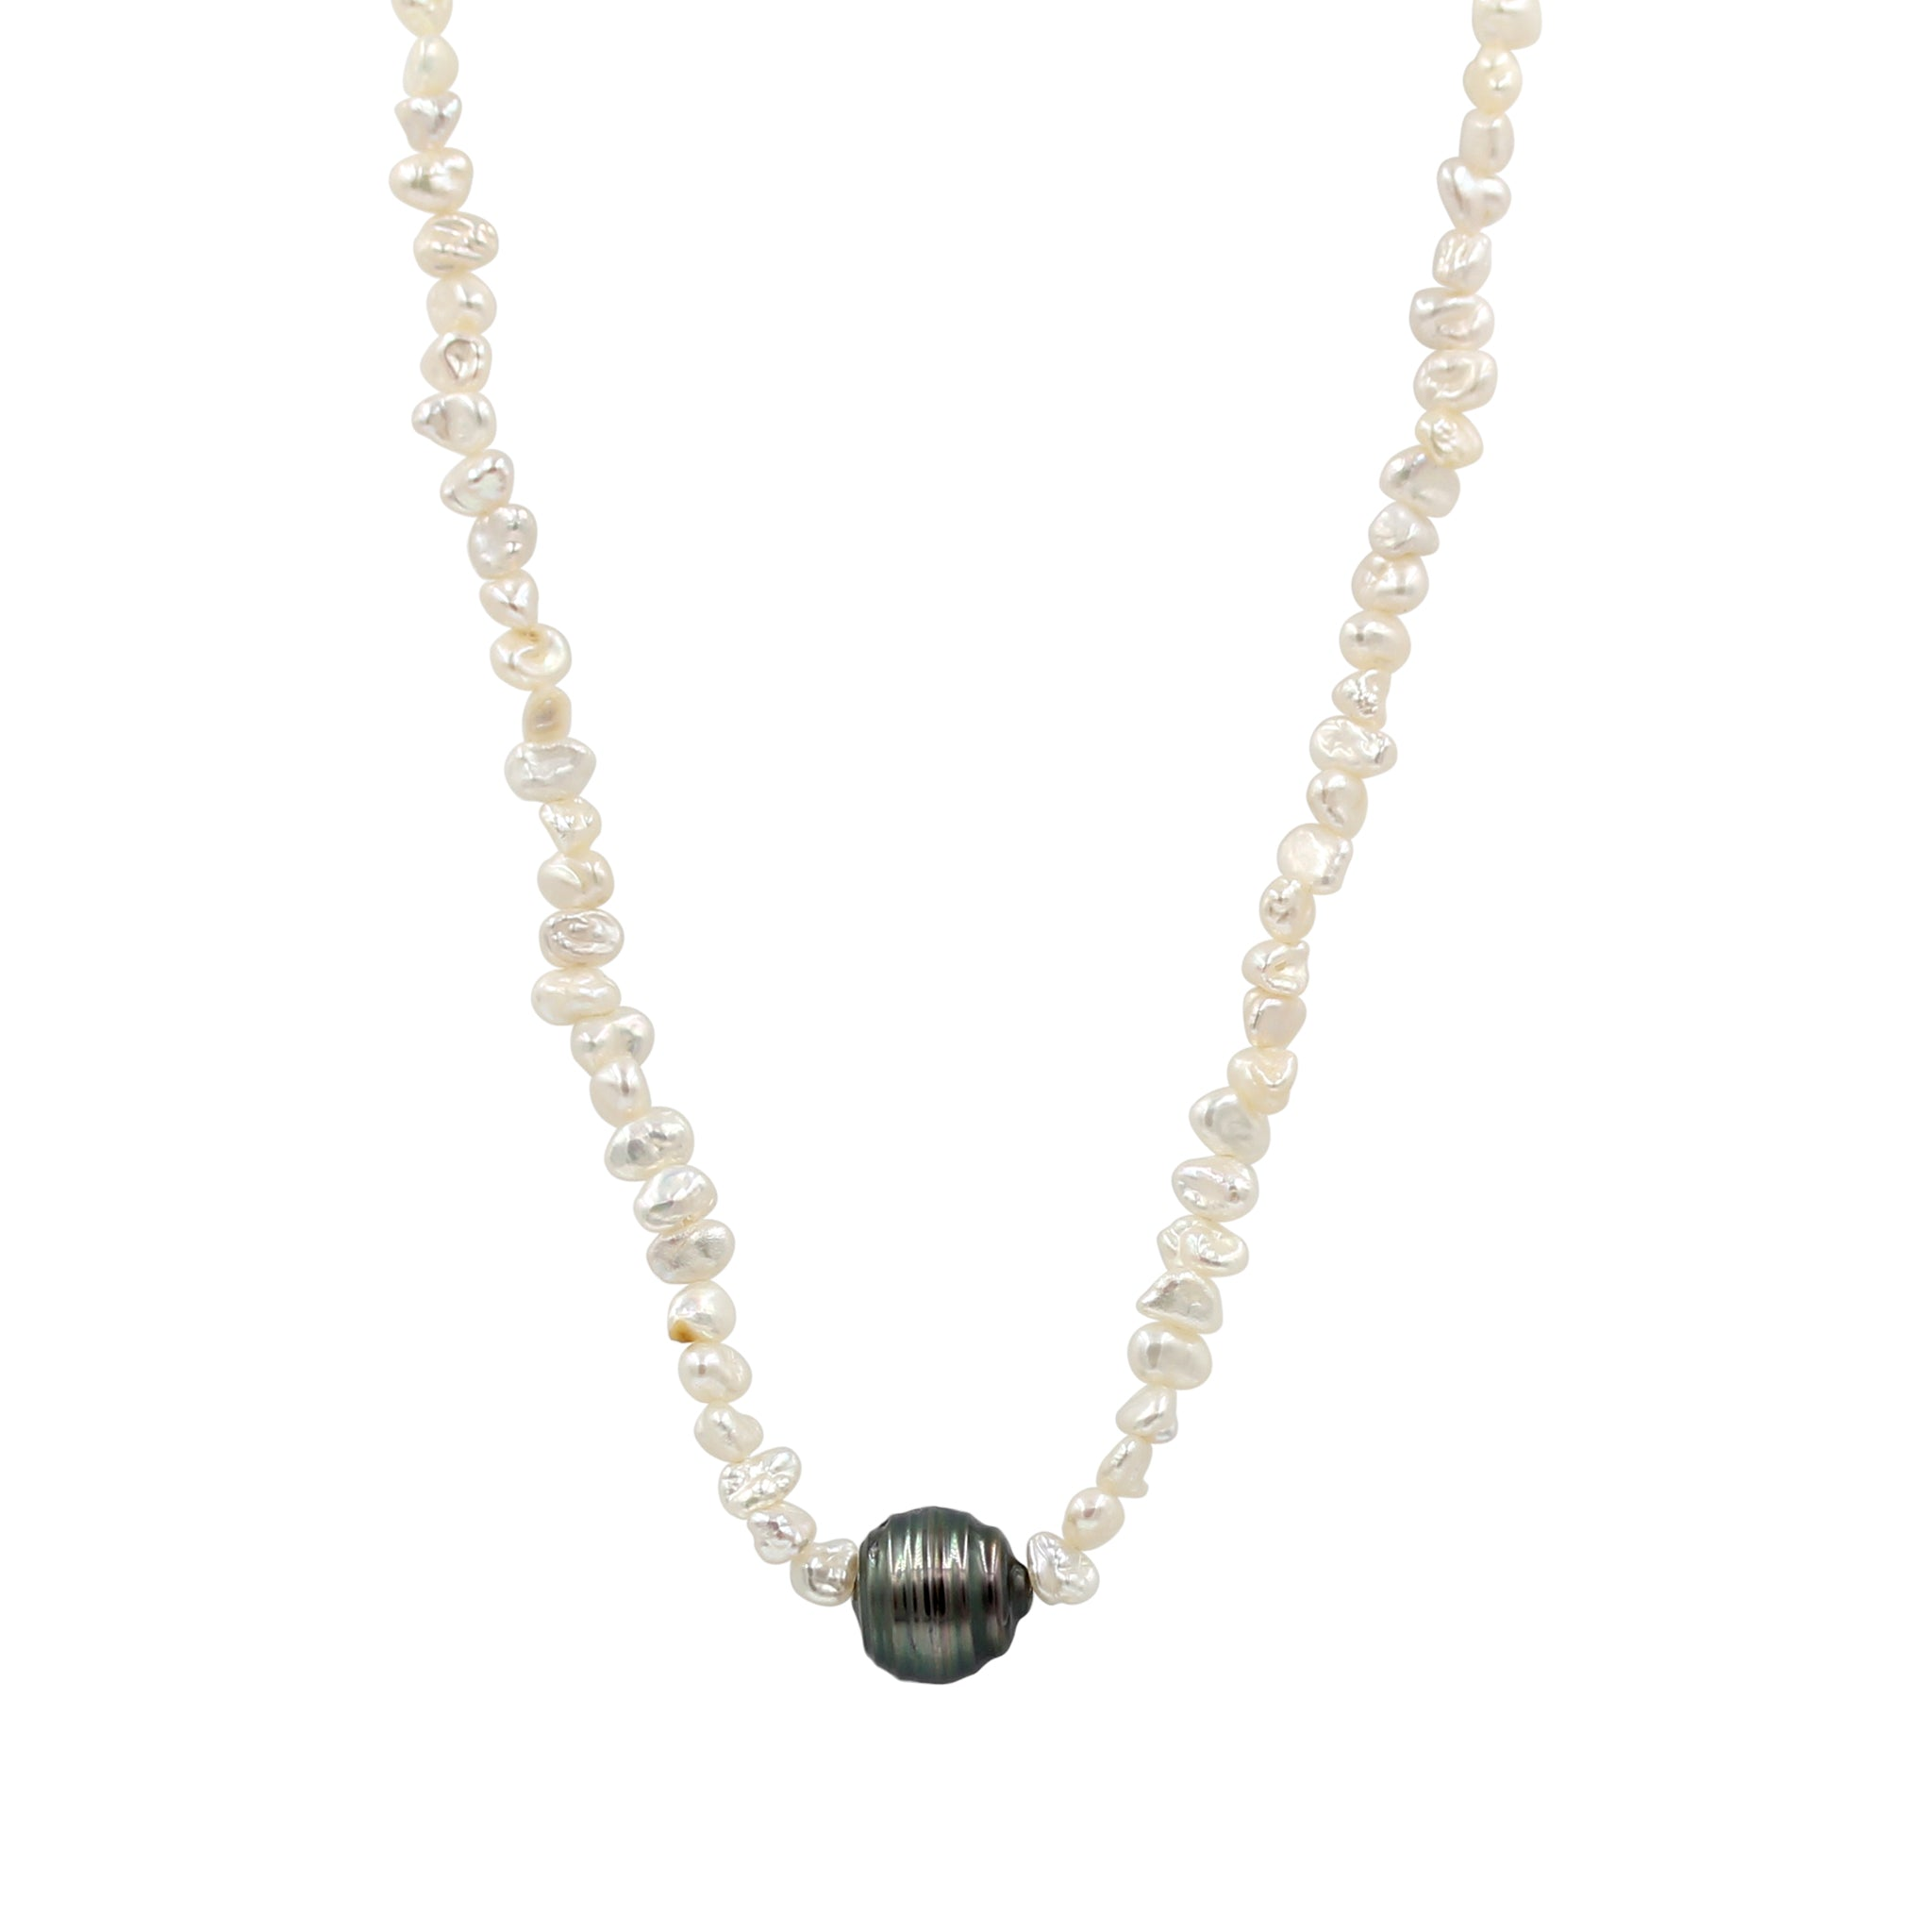 I am Loved Tahitian Pearl Necklace - Sati Gems Hawaii Healing Crystal Gemstone Jewelry